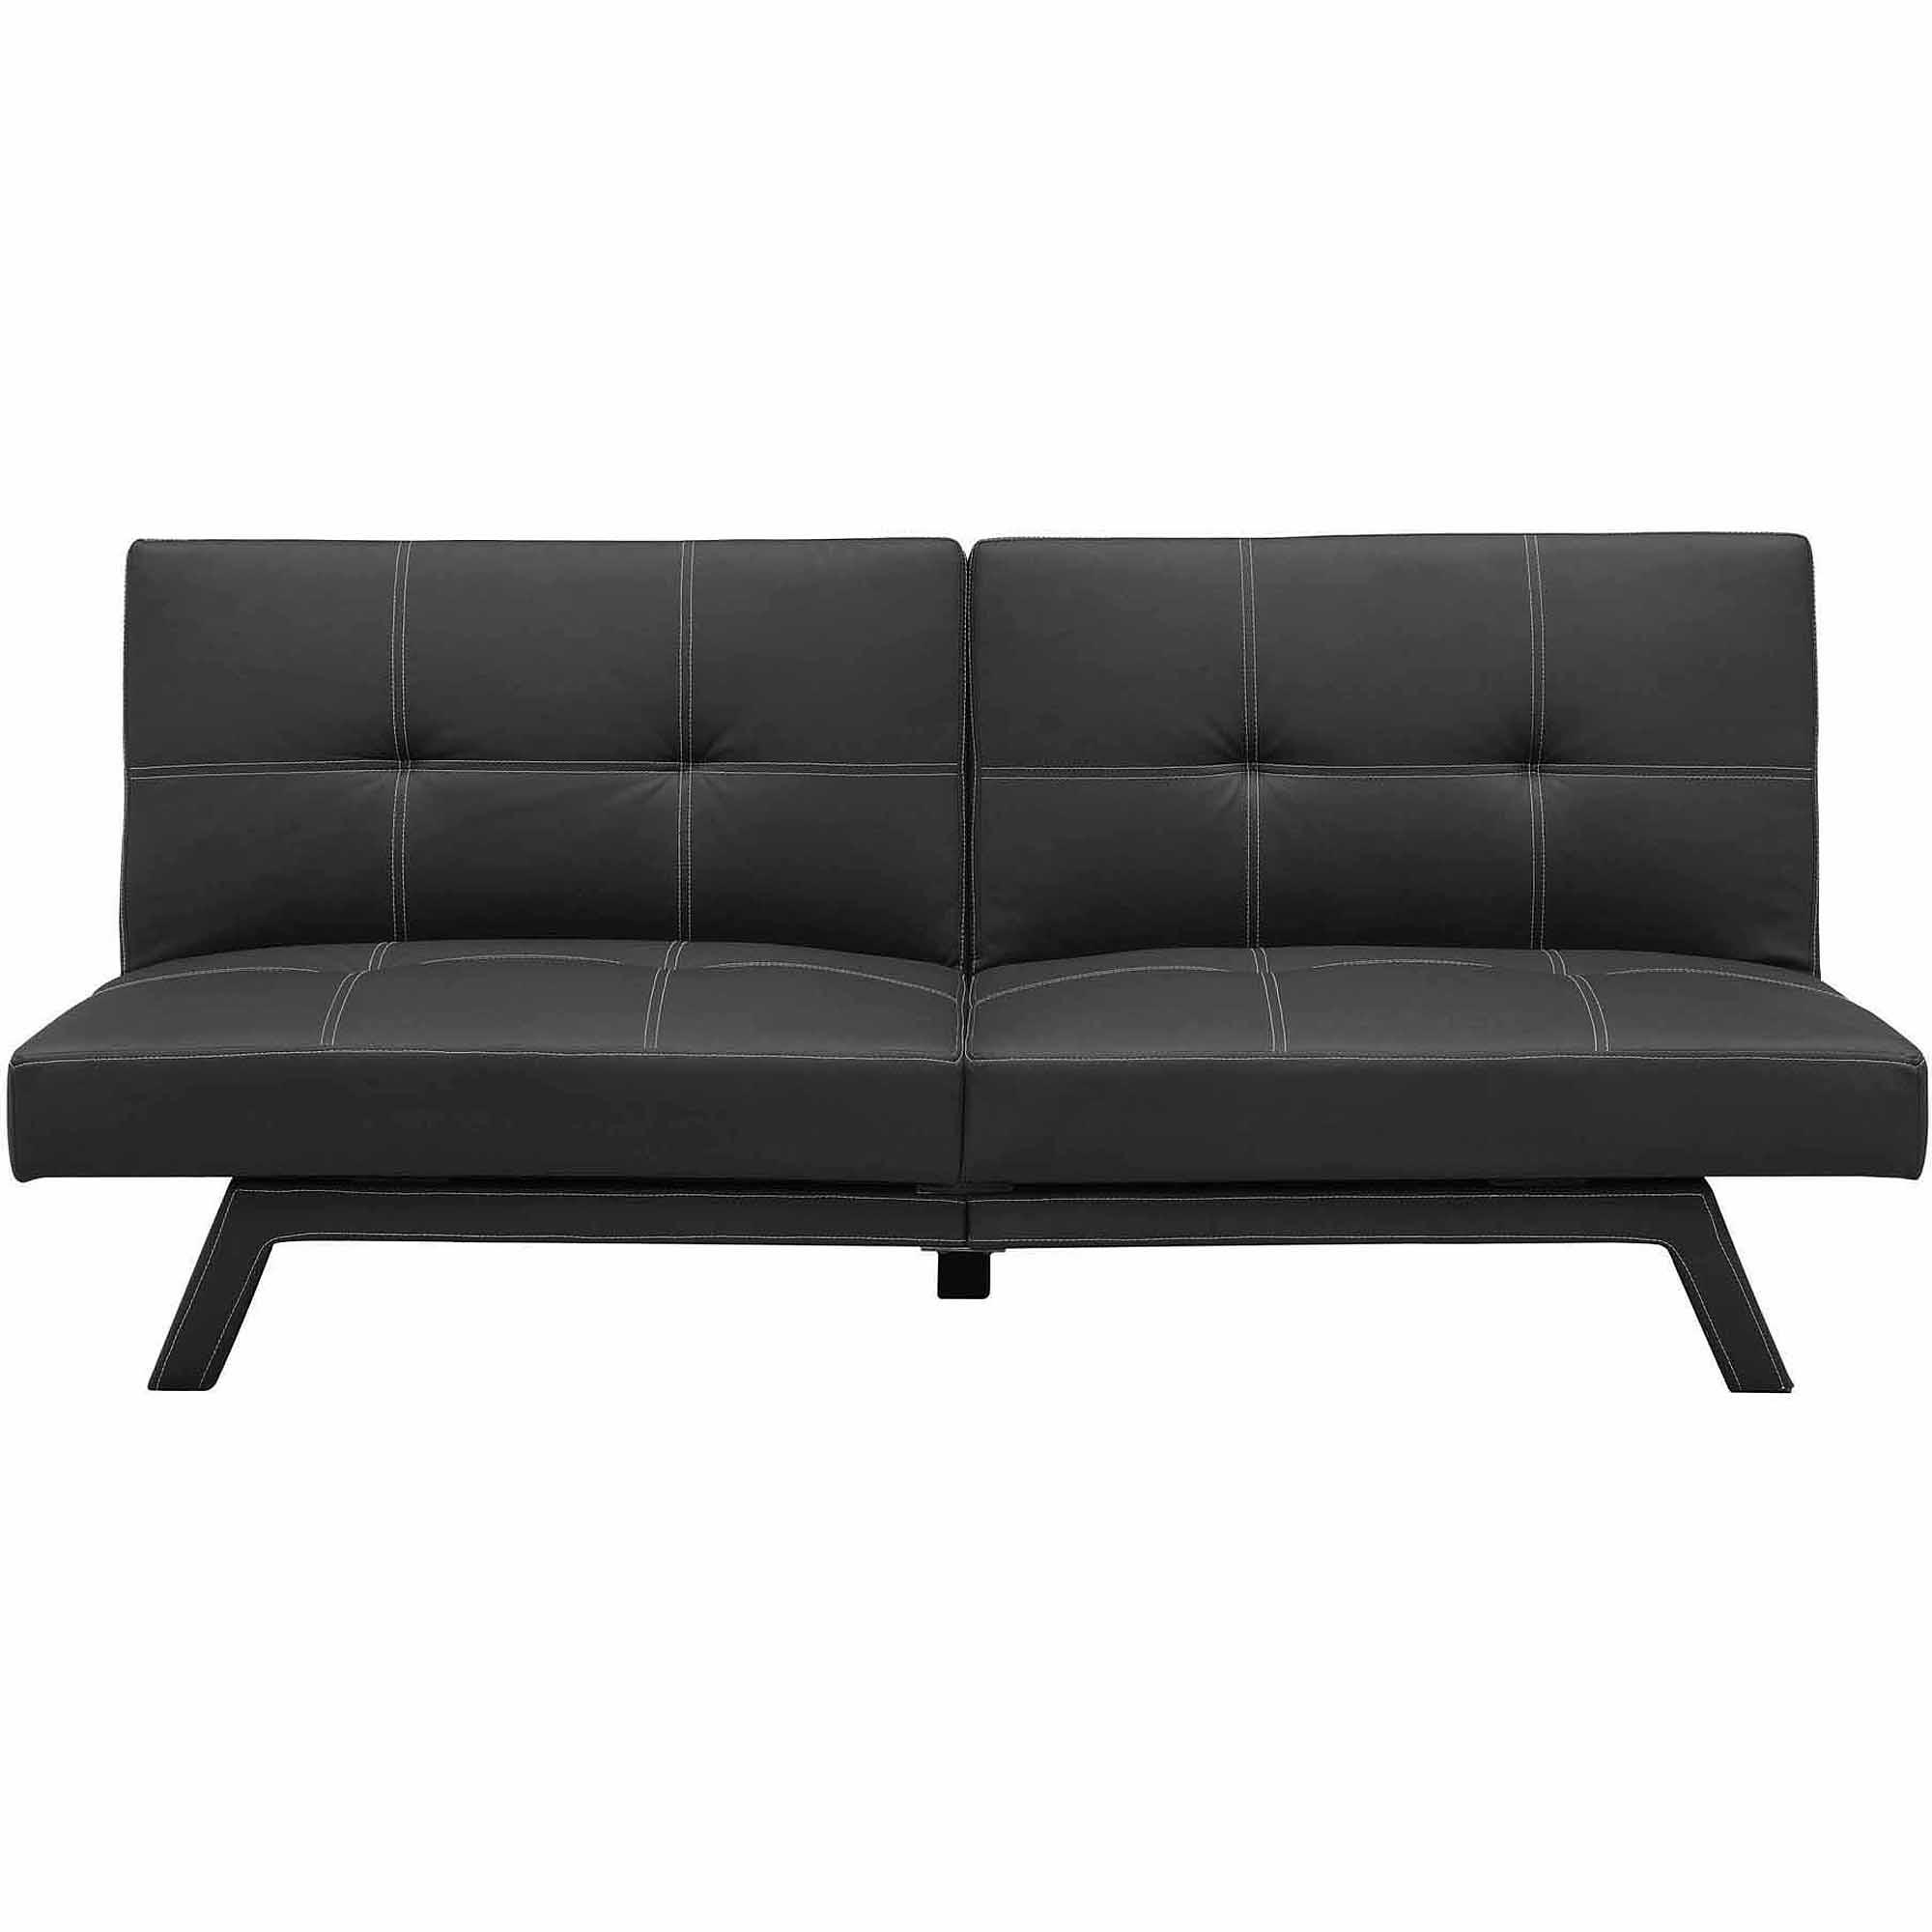 Delaney Split Back Futon Sofa Bed, Multiple Colors – Walmart With Leather Fouton Sofas (Image 7 of 20)